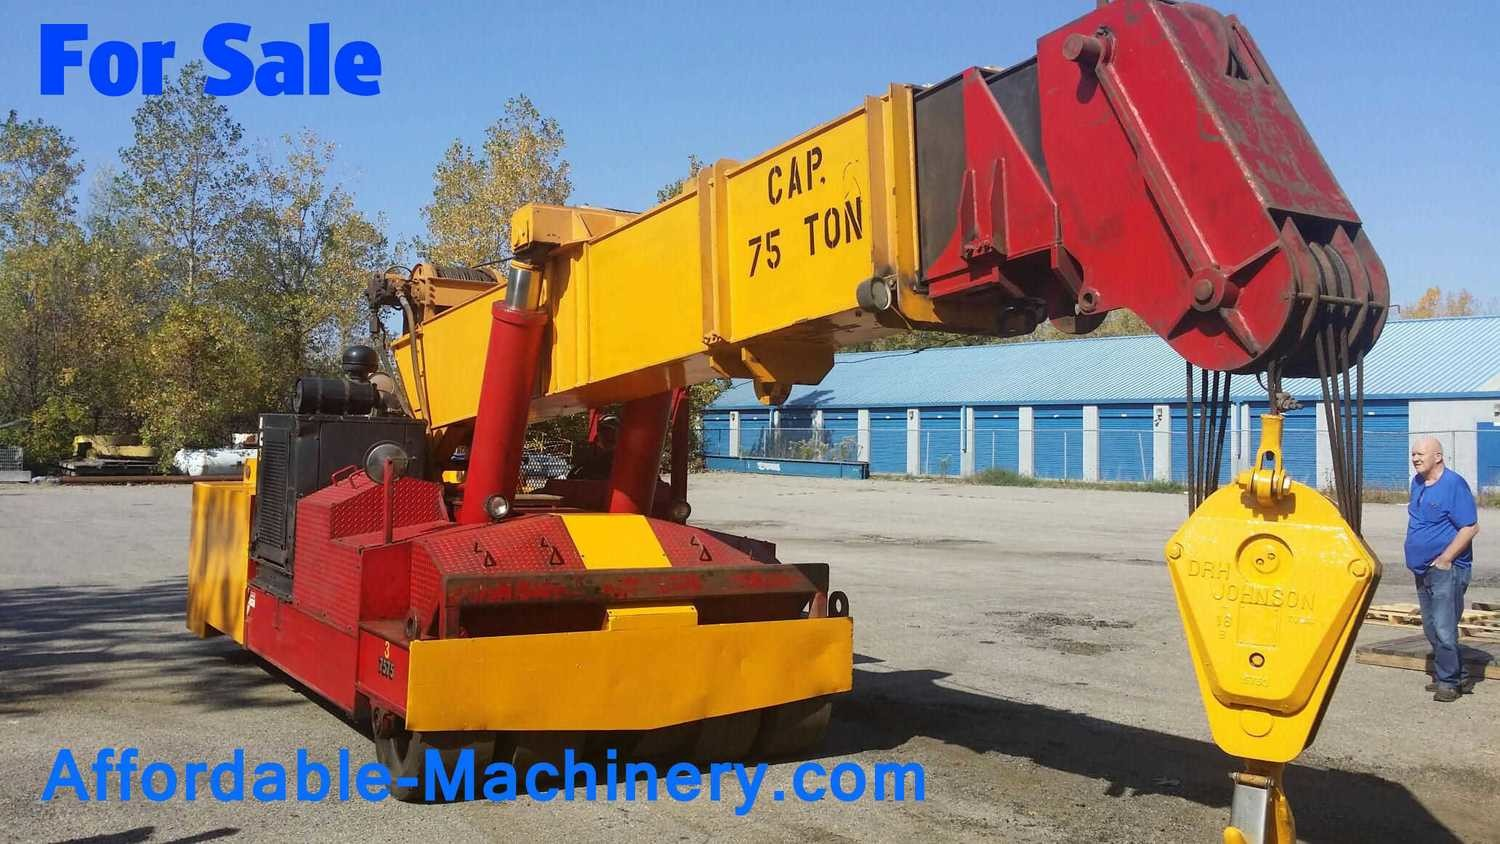 75 Ton Used Mobilift (Mobile Lift) For Sale